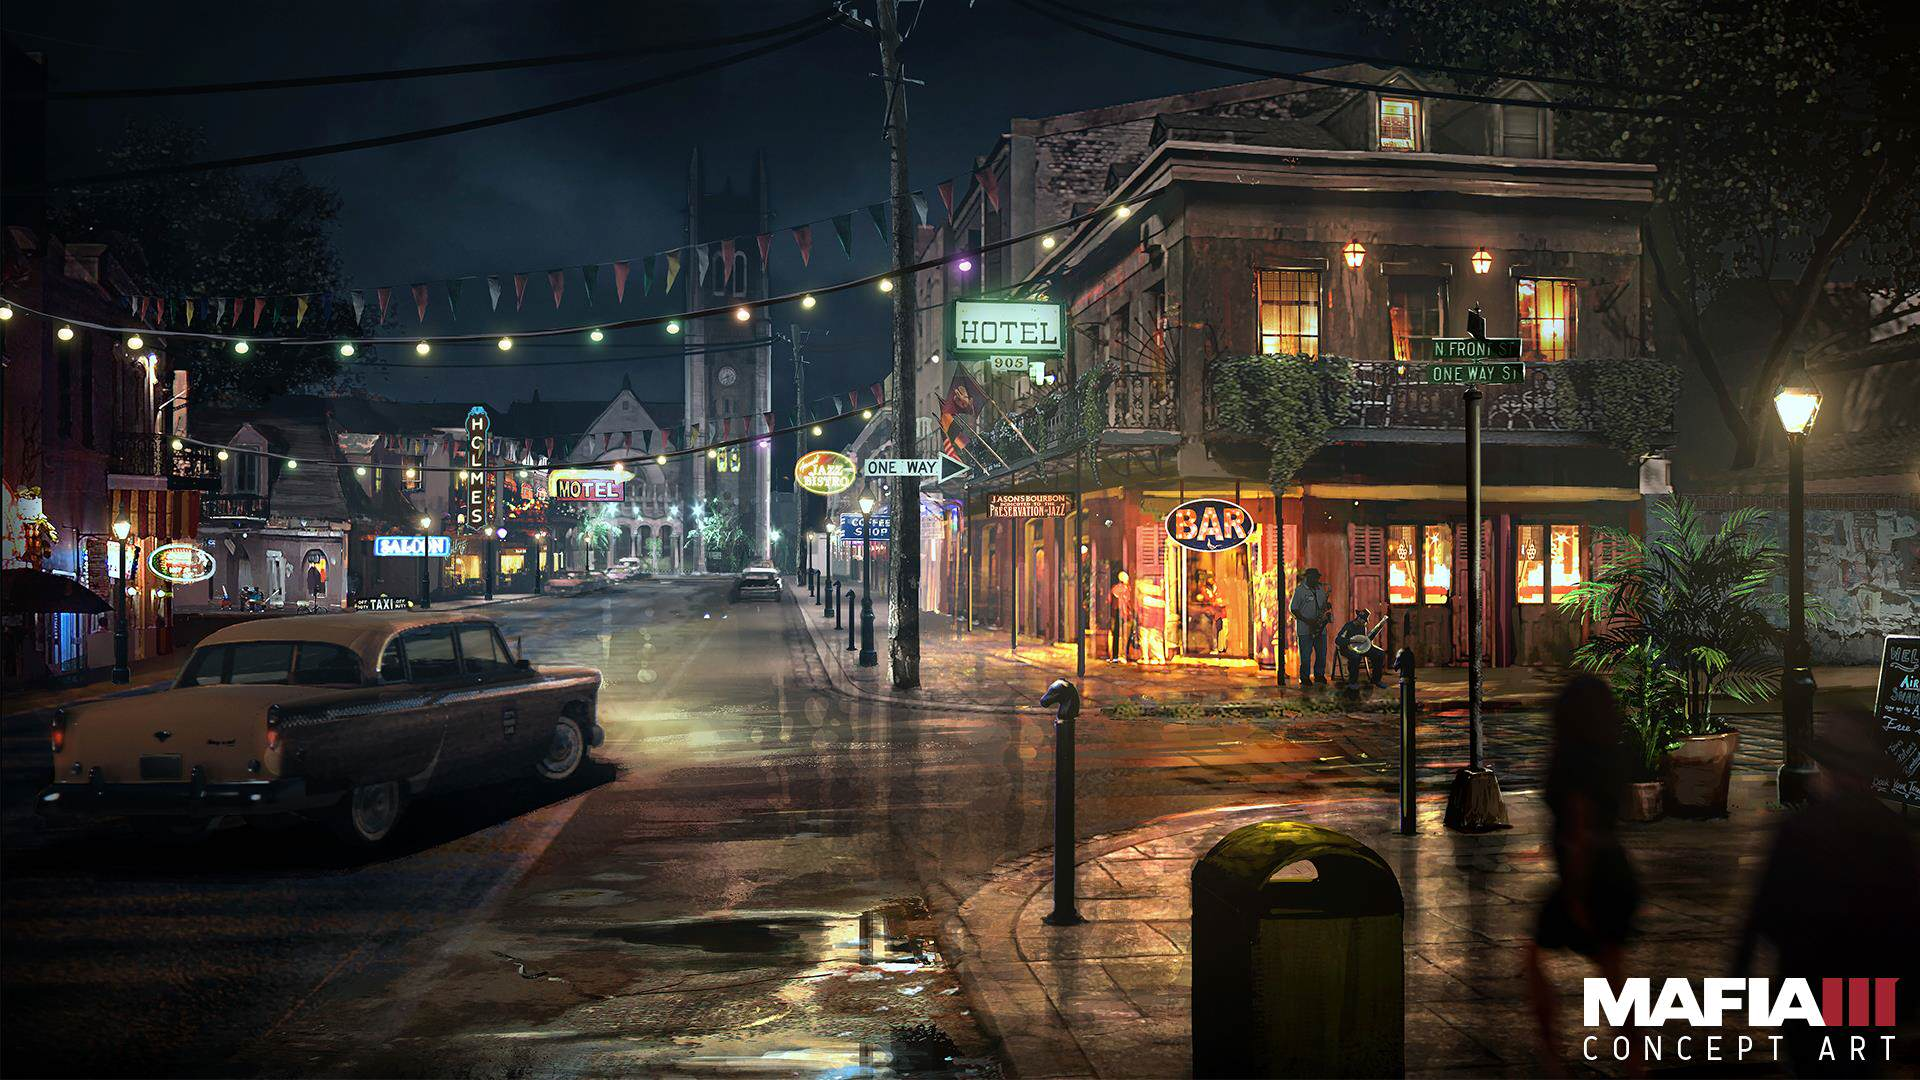 mafia3 french quarter Check Out Every Awesome Piece Of Mafia 3 Concept Art Released